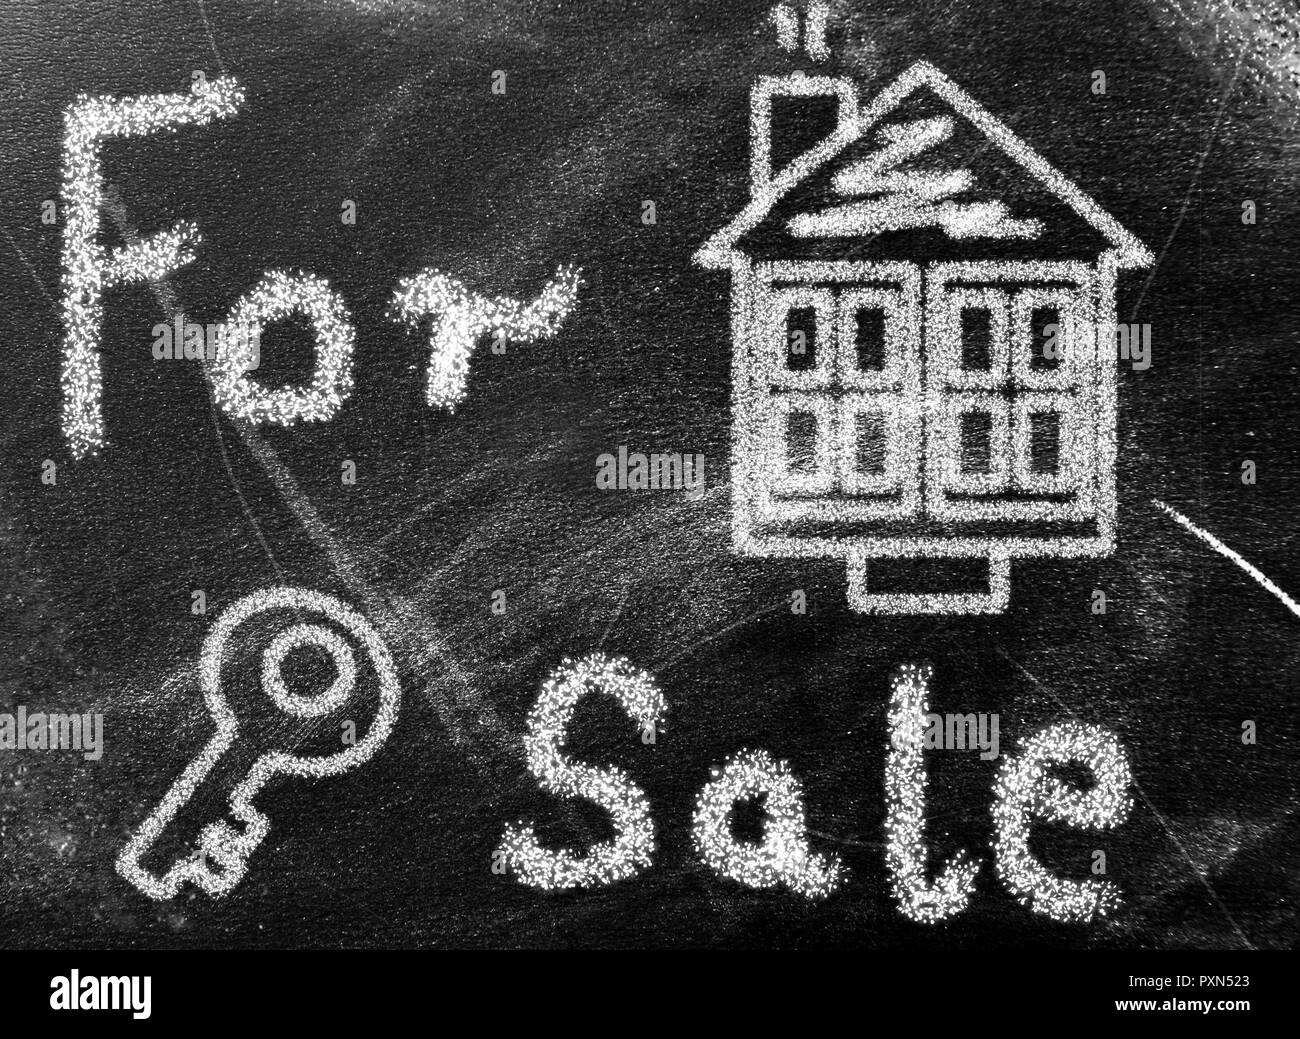 House painted on chalkboard - Stock Image